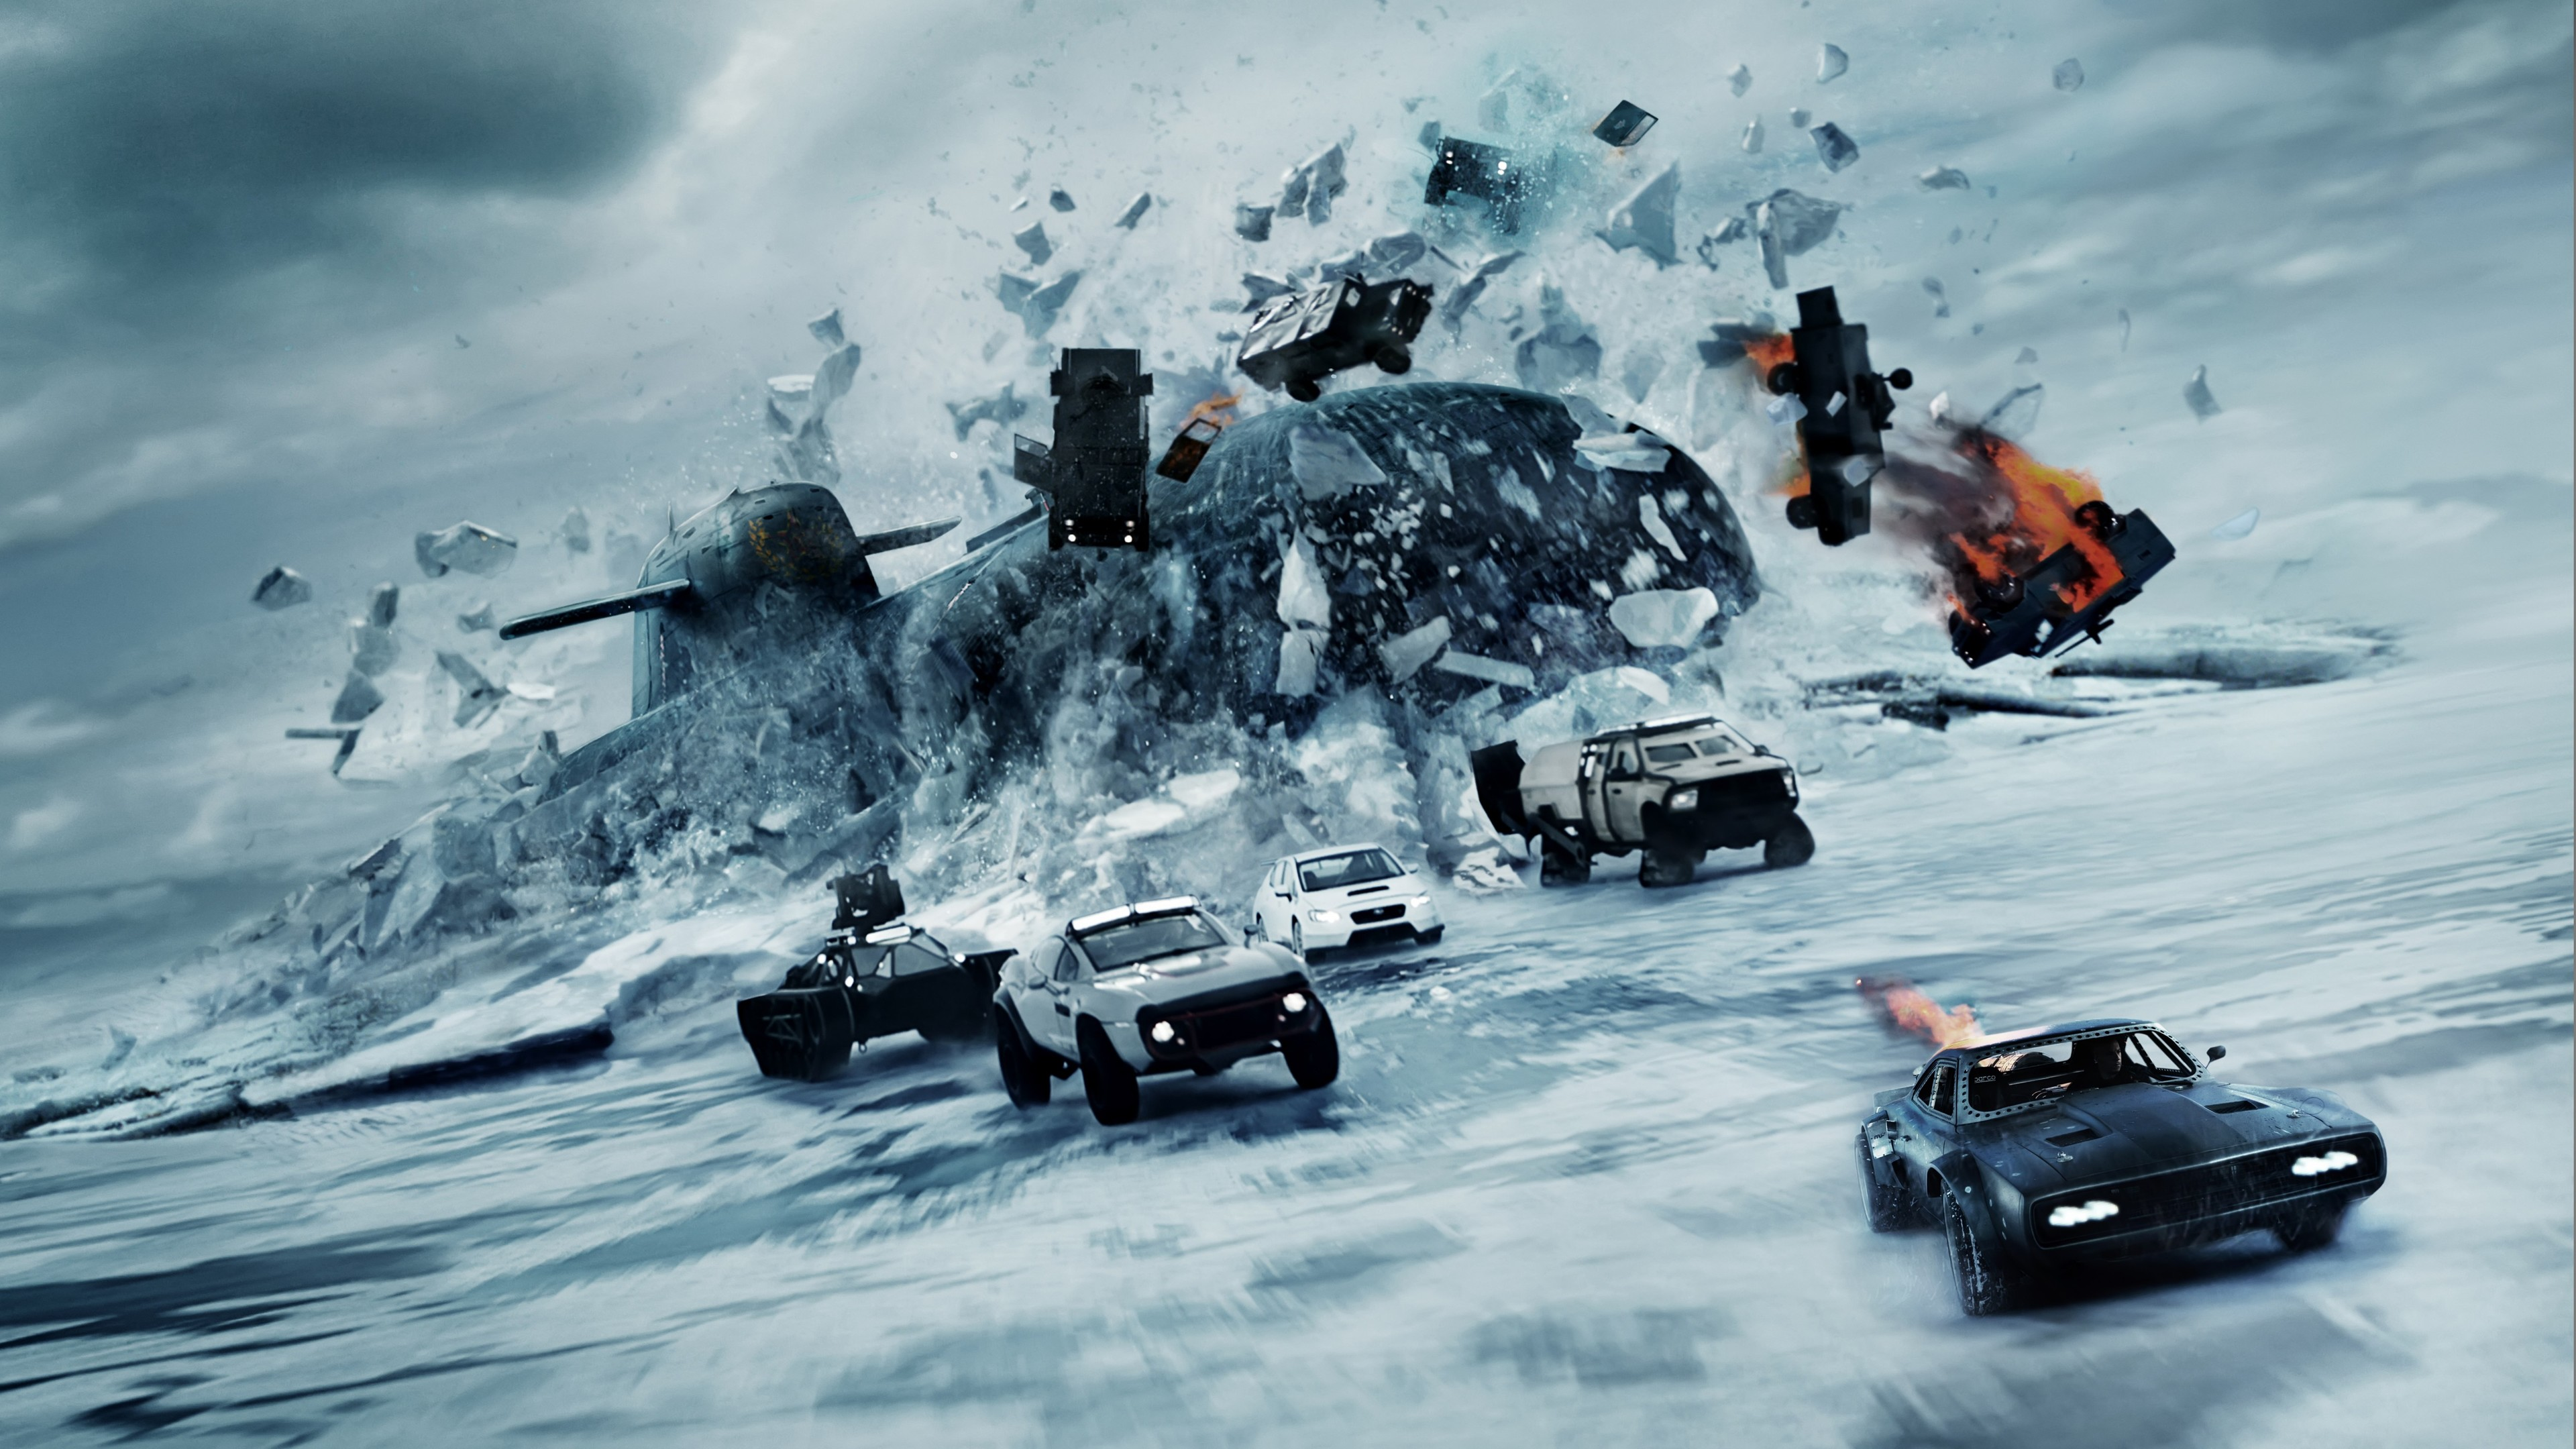 the fate of the furious 2017 movie 5k 1536401777 - The Fate Of The Furious 2017 Movie 5k - the fate of the furious wallpapers, movies wallpapers, hd-wallpapers, fast and furious wallpapers, fast 8 wallpapers, 5k wallpapers, 4k-wallpapers, 2017 movies wallpapers